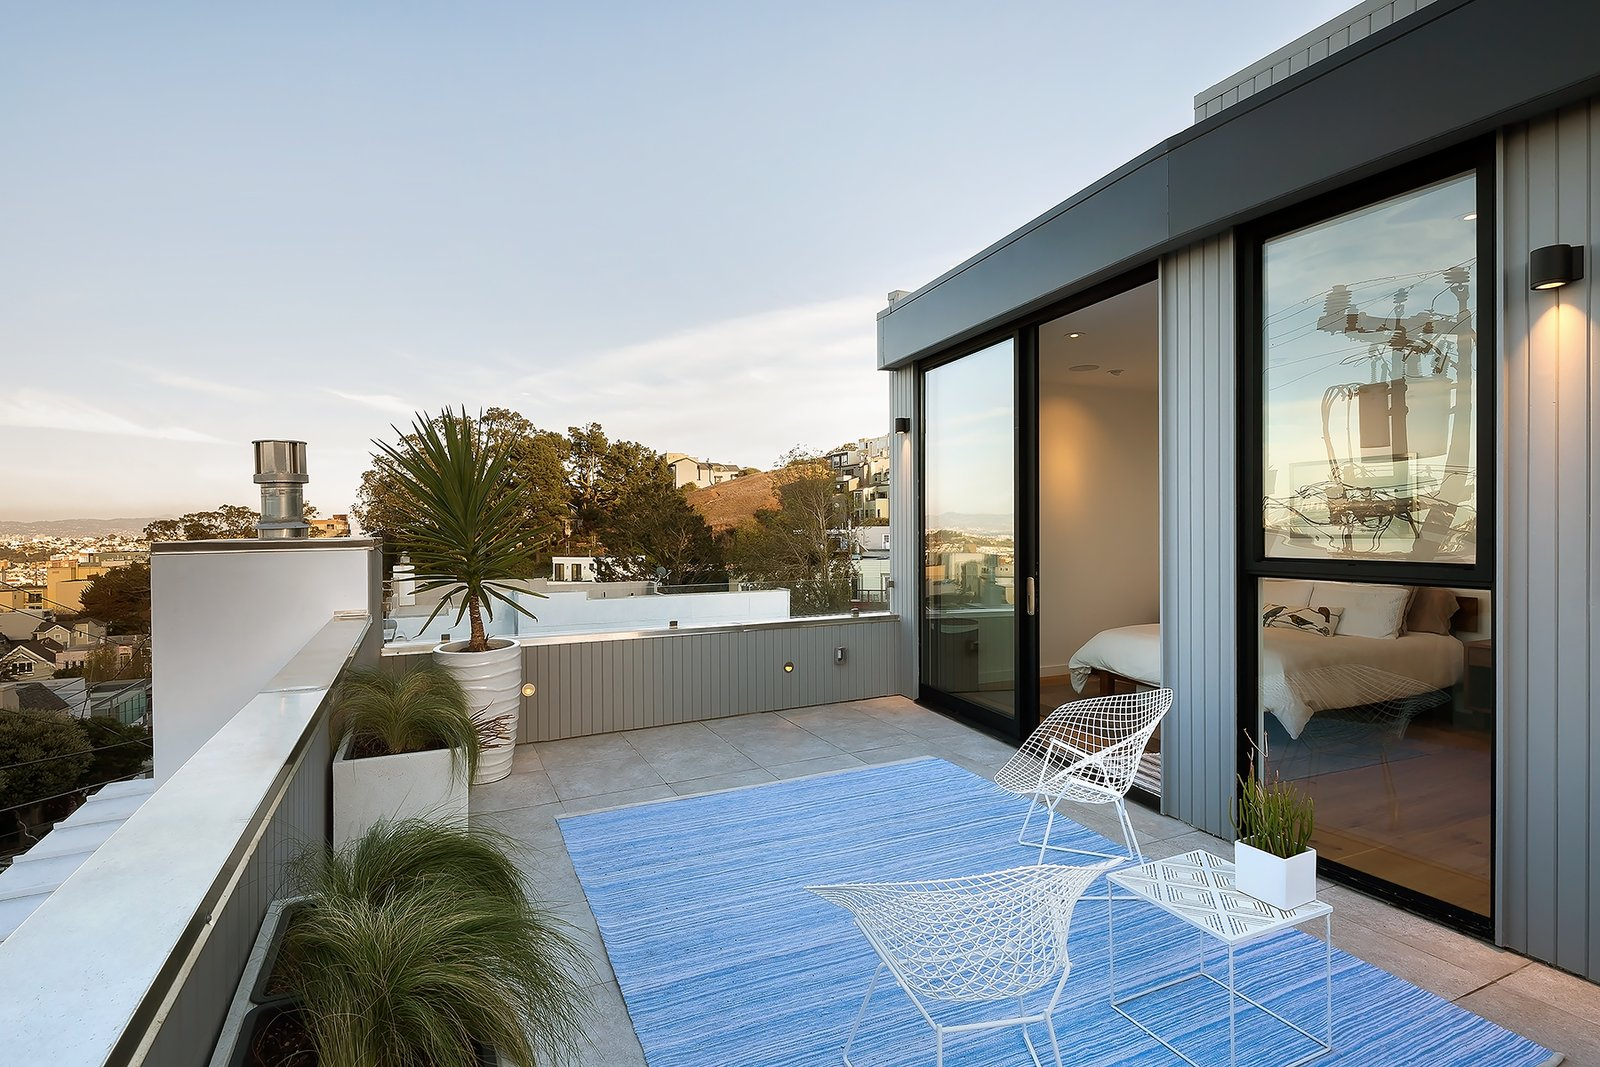 Roof deck Tagged: Outdoor and Small Patio, Porch, Deck.  27th Street - Noe Valley by patrick perez/designpad architecture